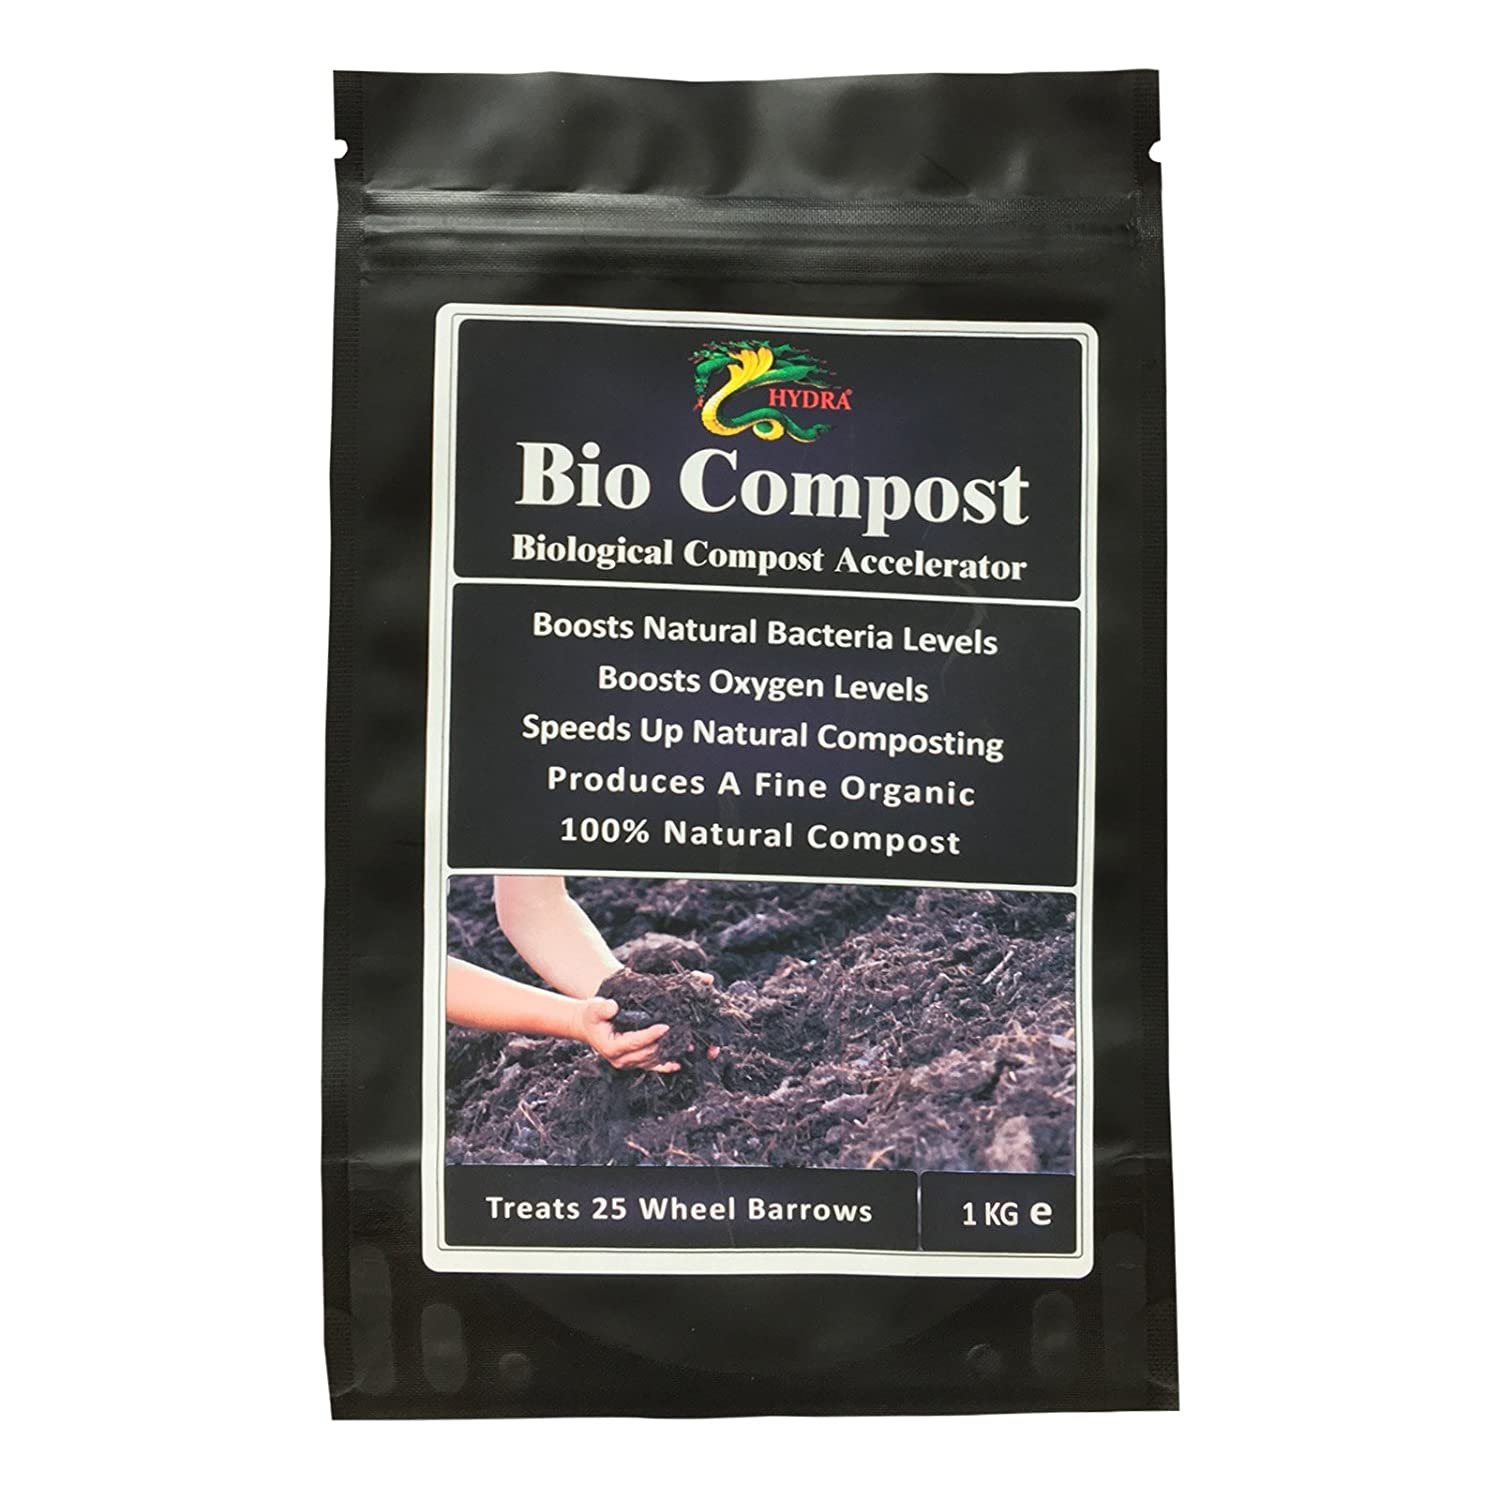 HYDRA BIO COMPOST- 1 KG - Compost Booster, Highest Quality of Compost Soil Conditioner Environmentally Friendly Product Hydra International Ltd